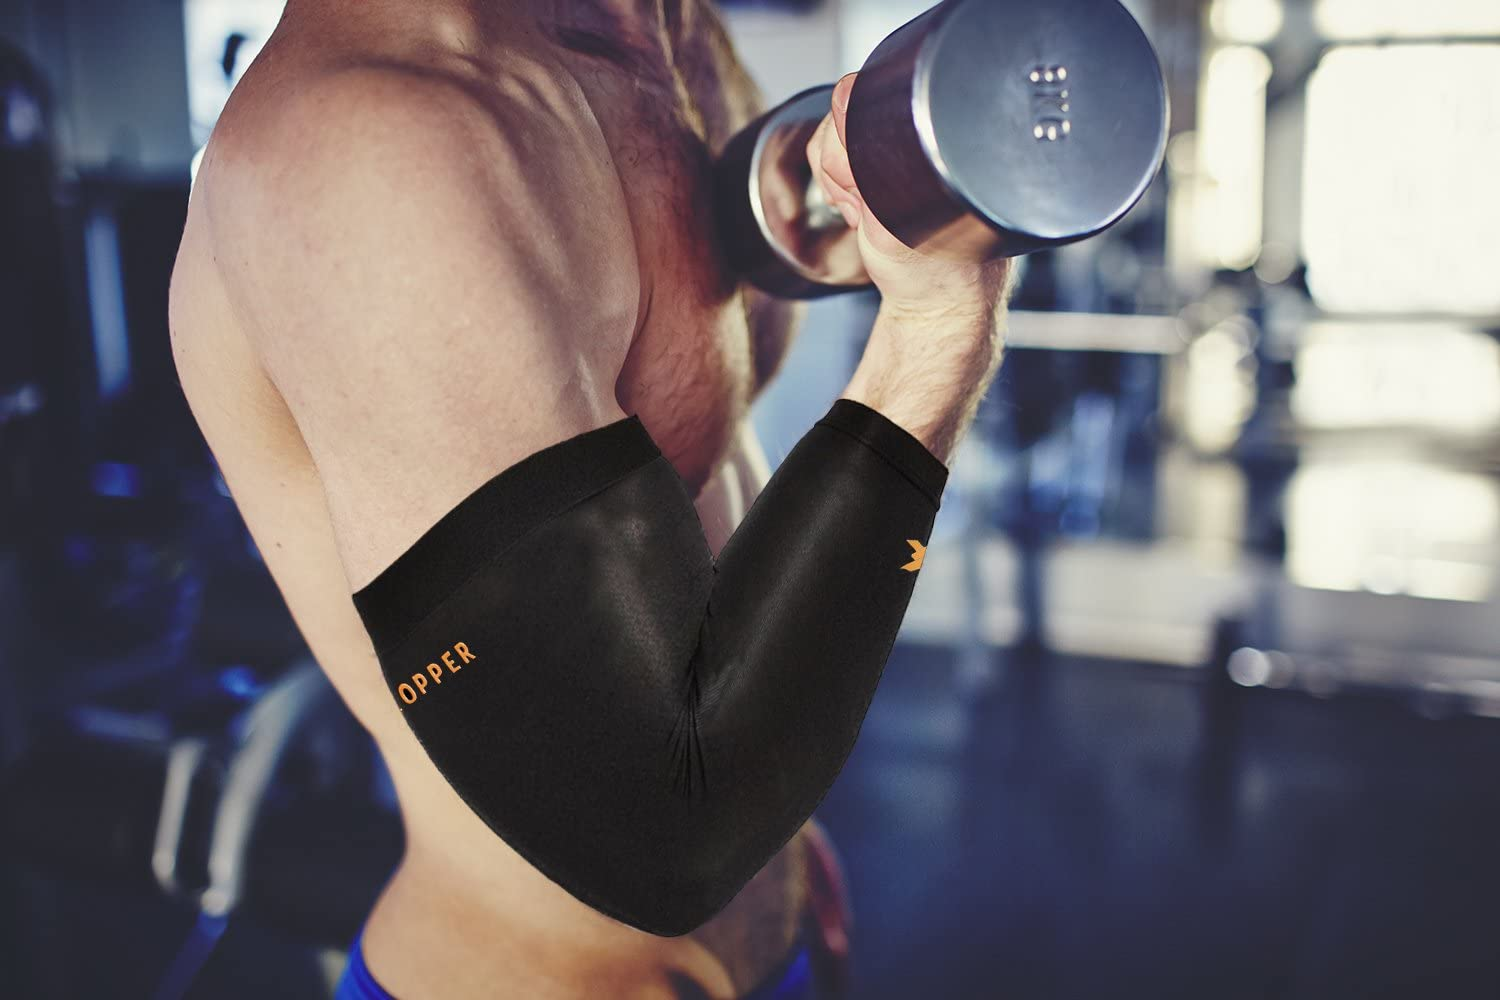 Thx4COPPER Elbow Compression Sleeve(1 Pair) - #1 Copper Infused Support –Guaranteed Recovery Copper Elbow Brace-Idea for Workouts, Sports, Golfers, Tennis Elbow, Arthritis, Tendonitis-Large: Health & Personal Care